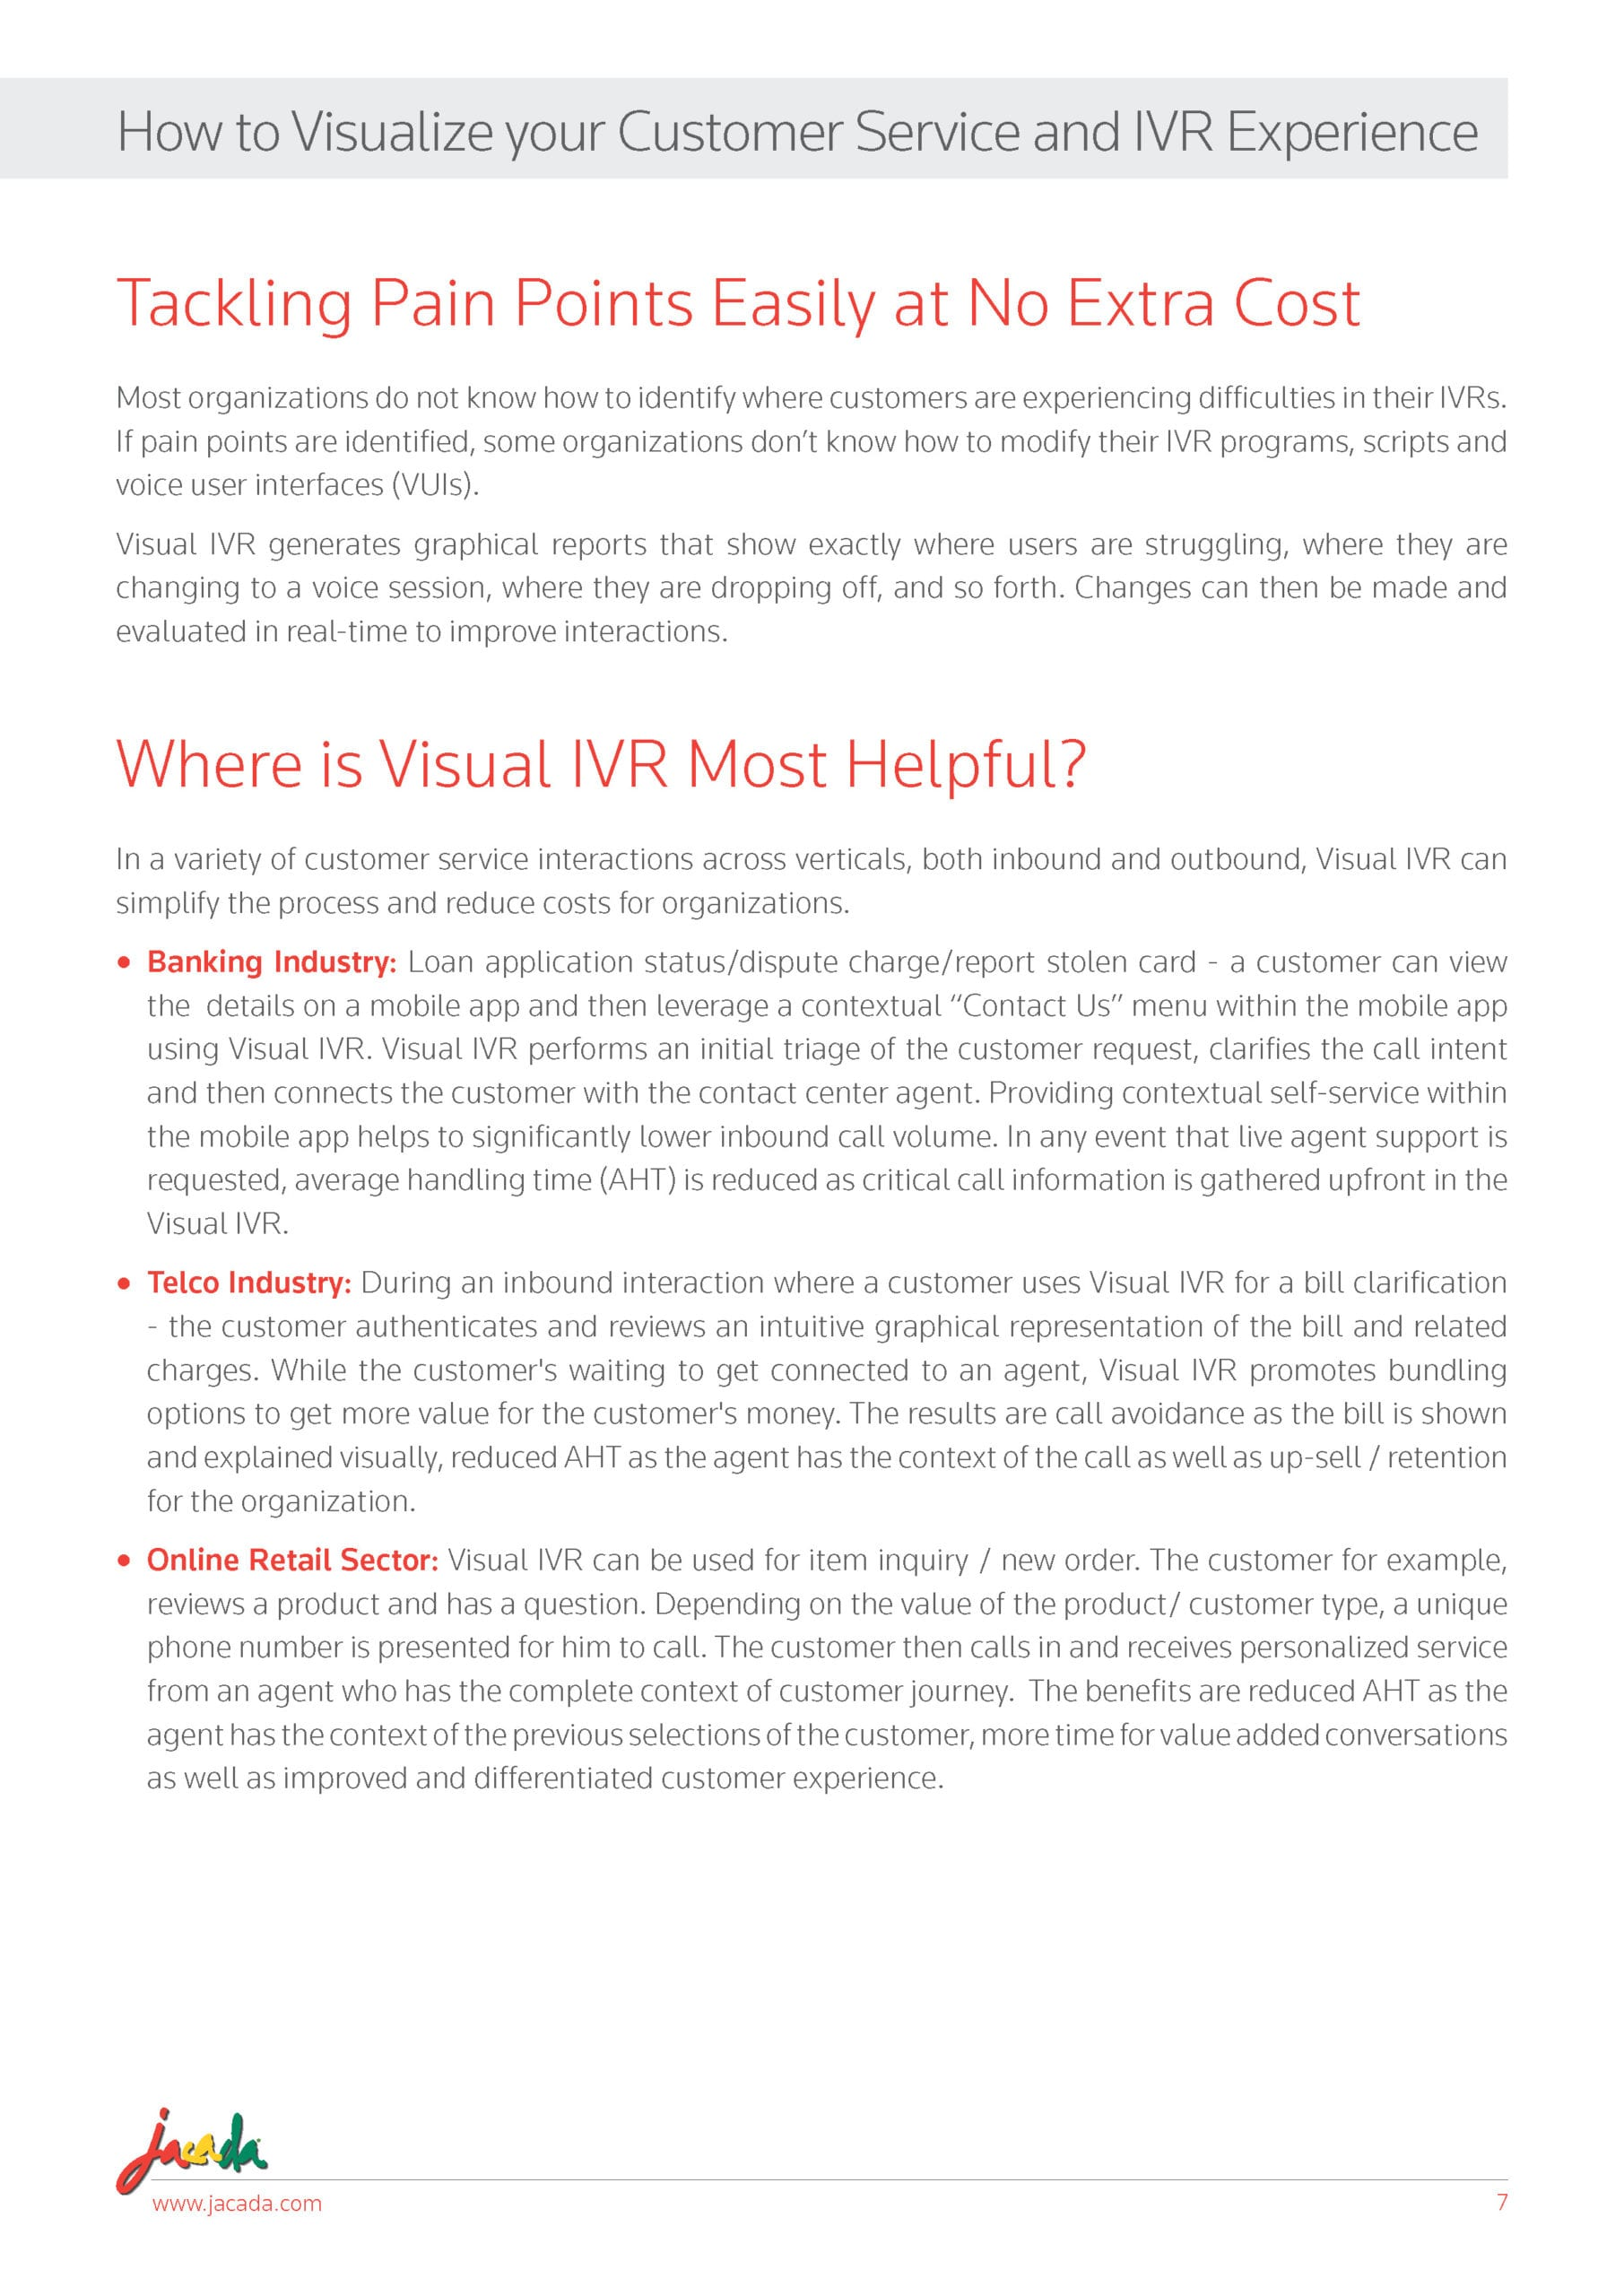 White_Paper_How_to_Visualize_your_customer_service_IVR_experience_Page_11_Page_07a